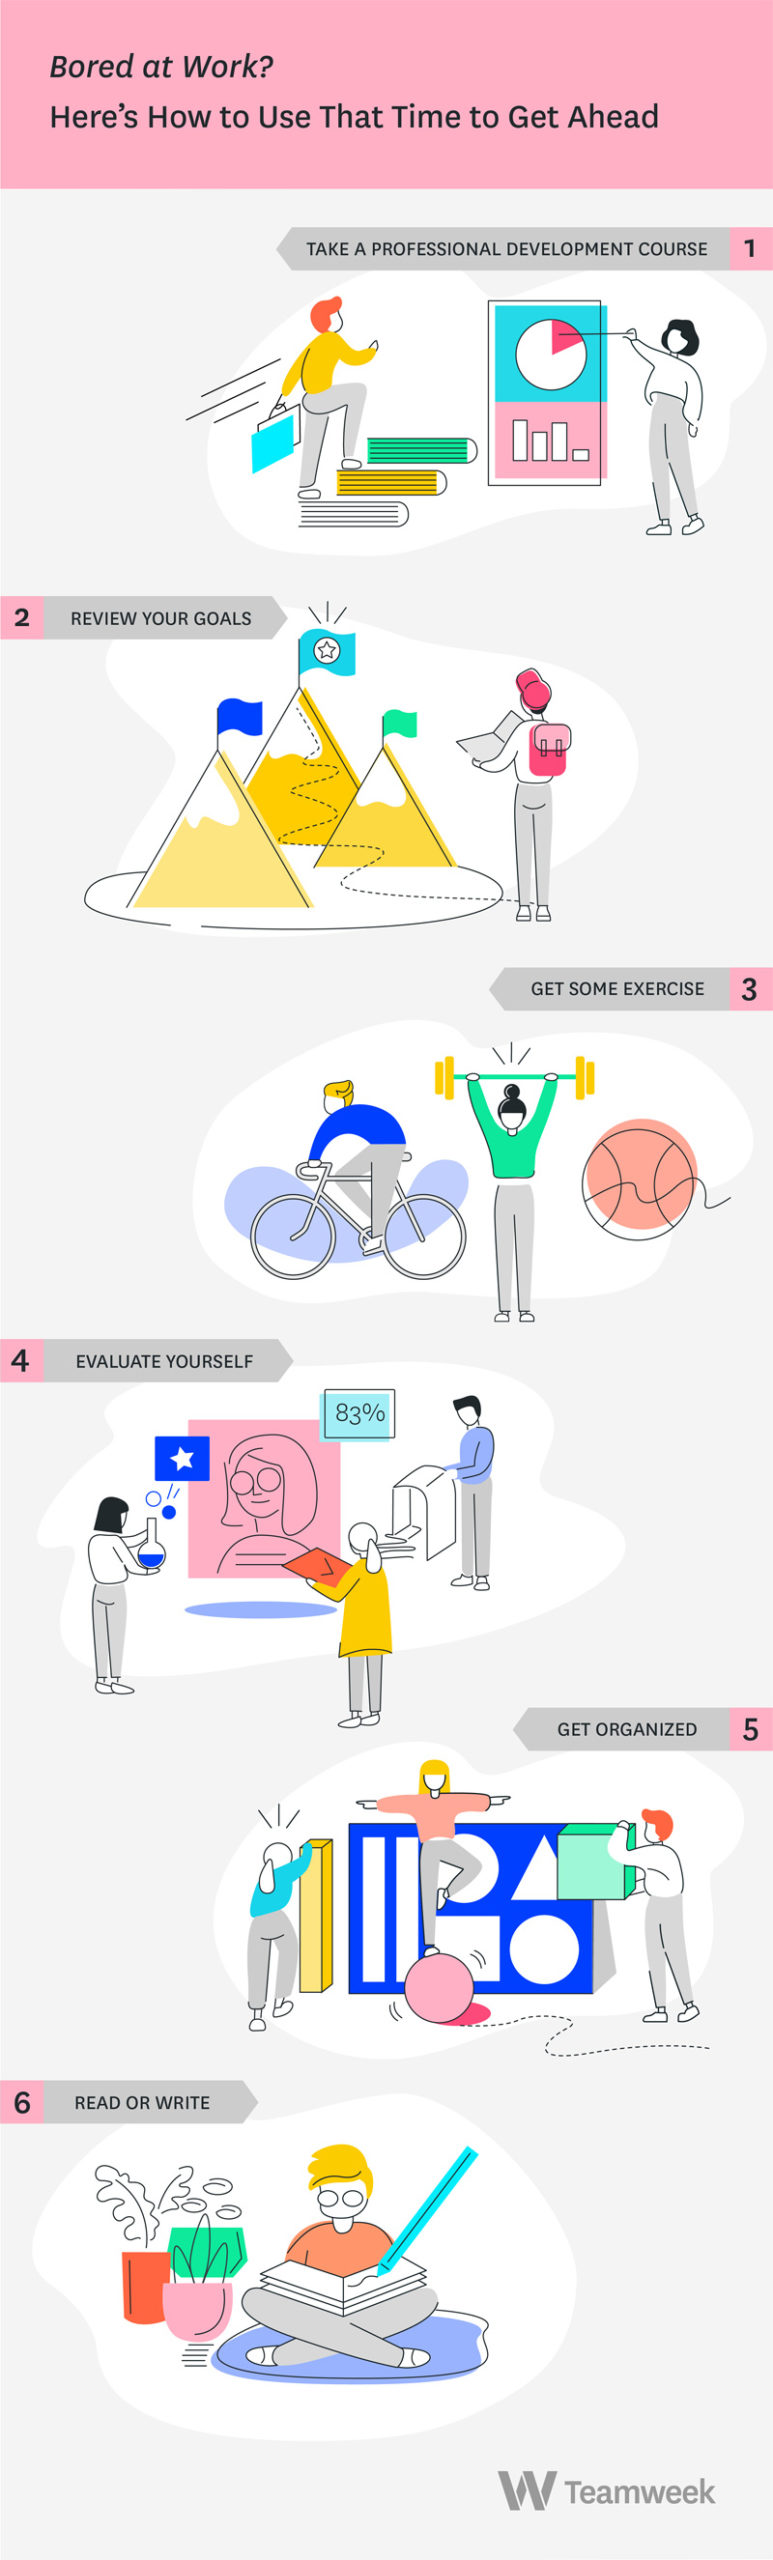 bored at work infographic